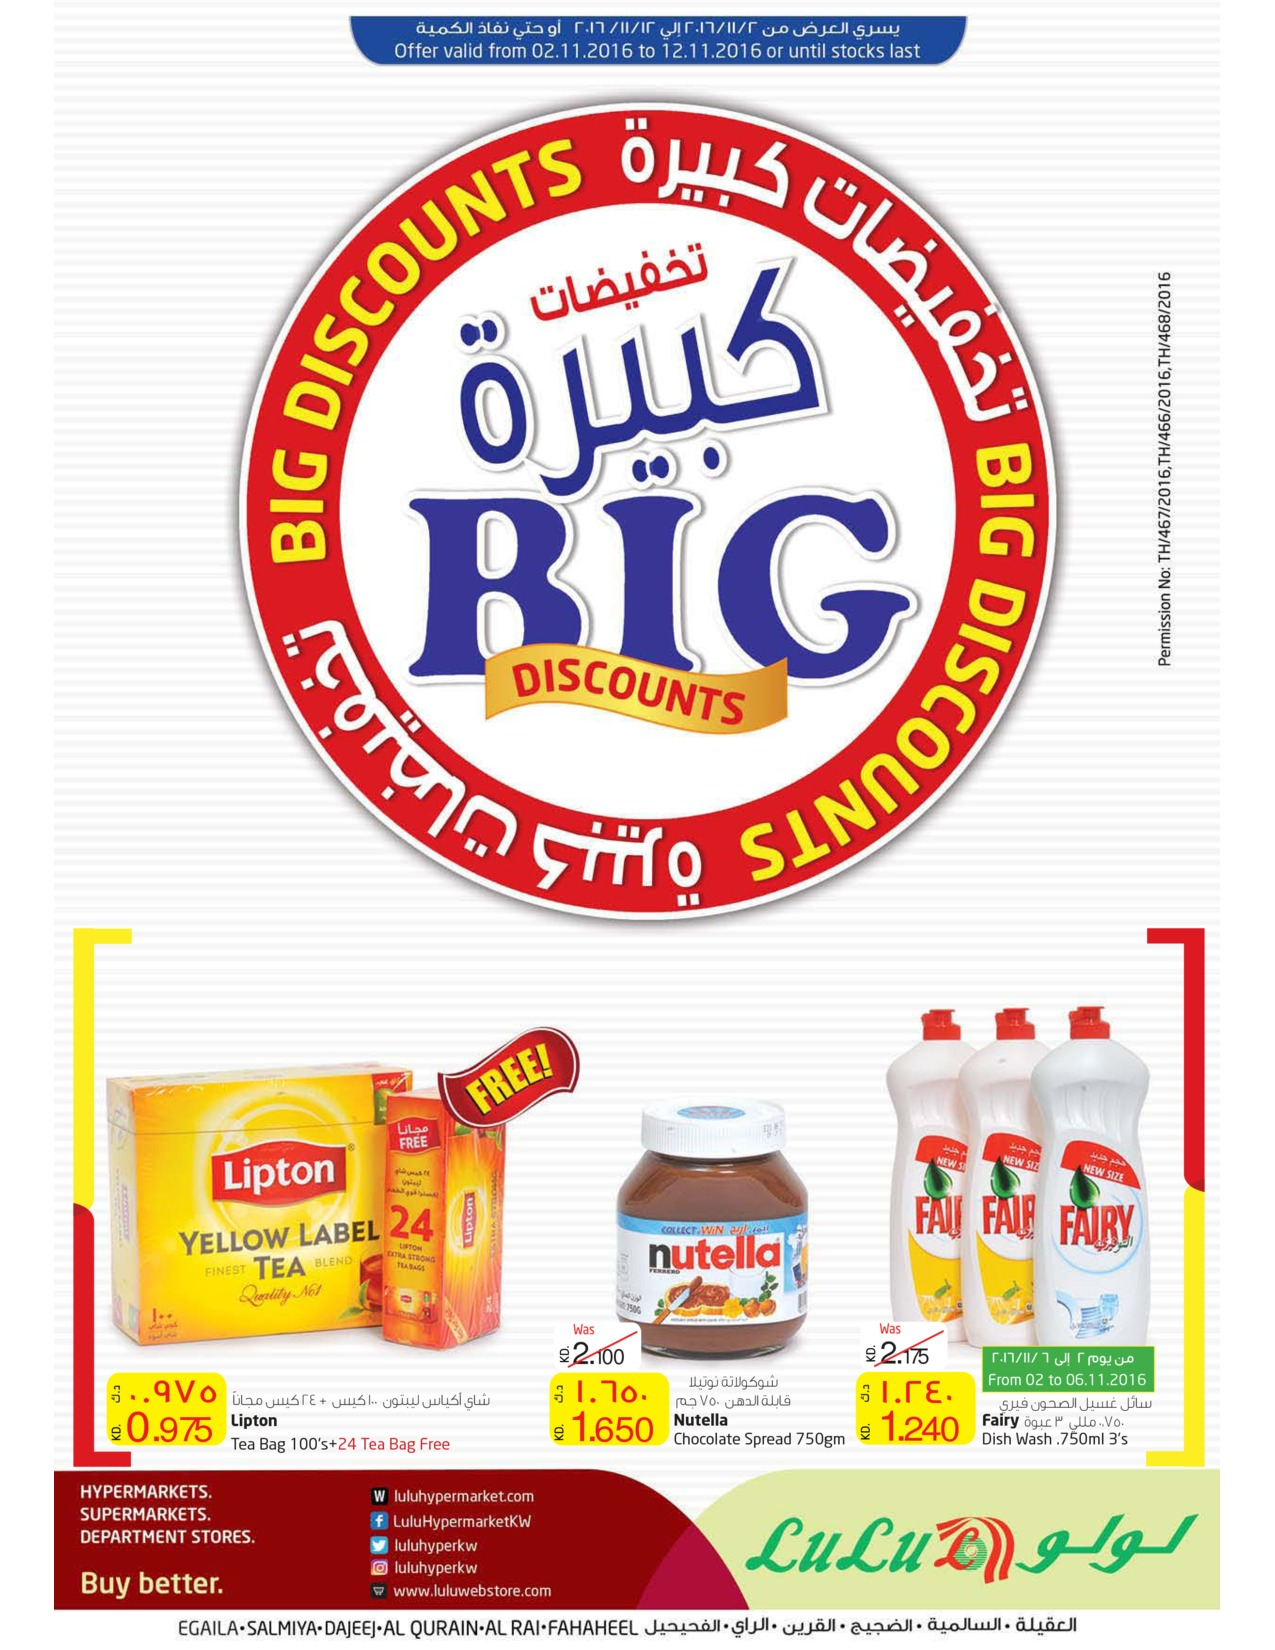 big-discounts-kuwait